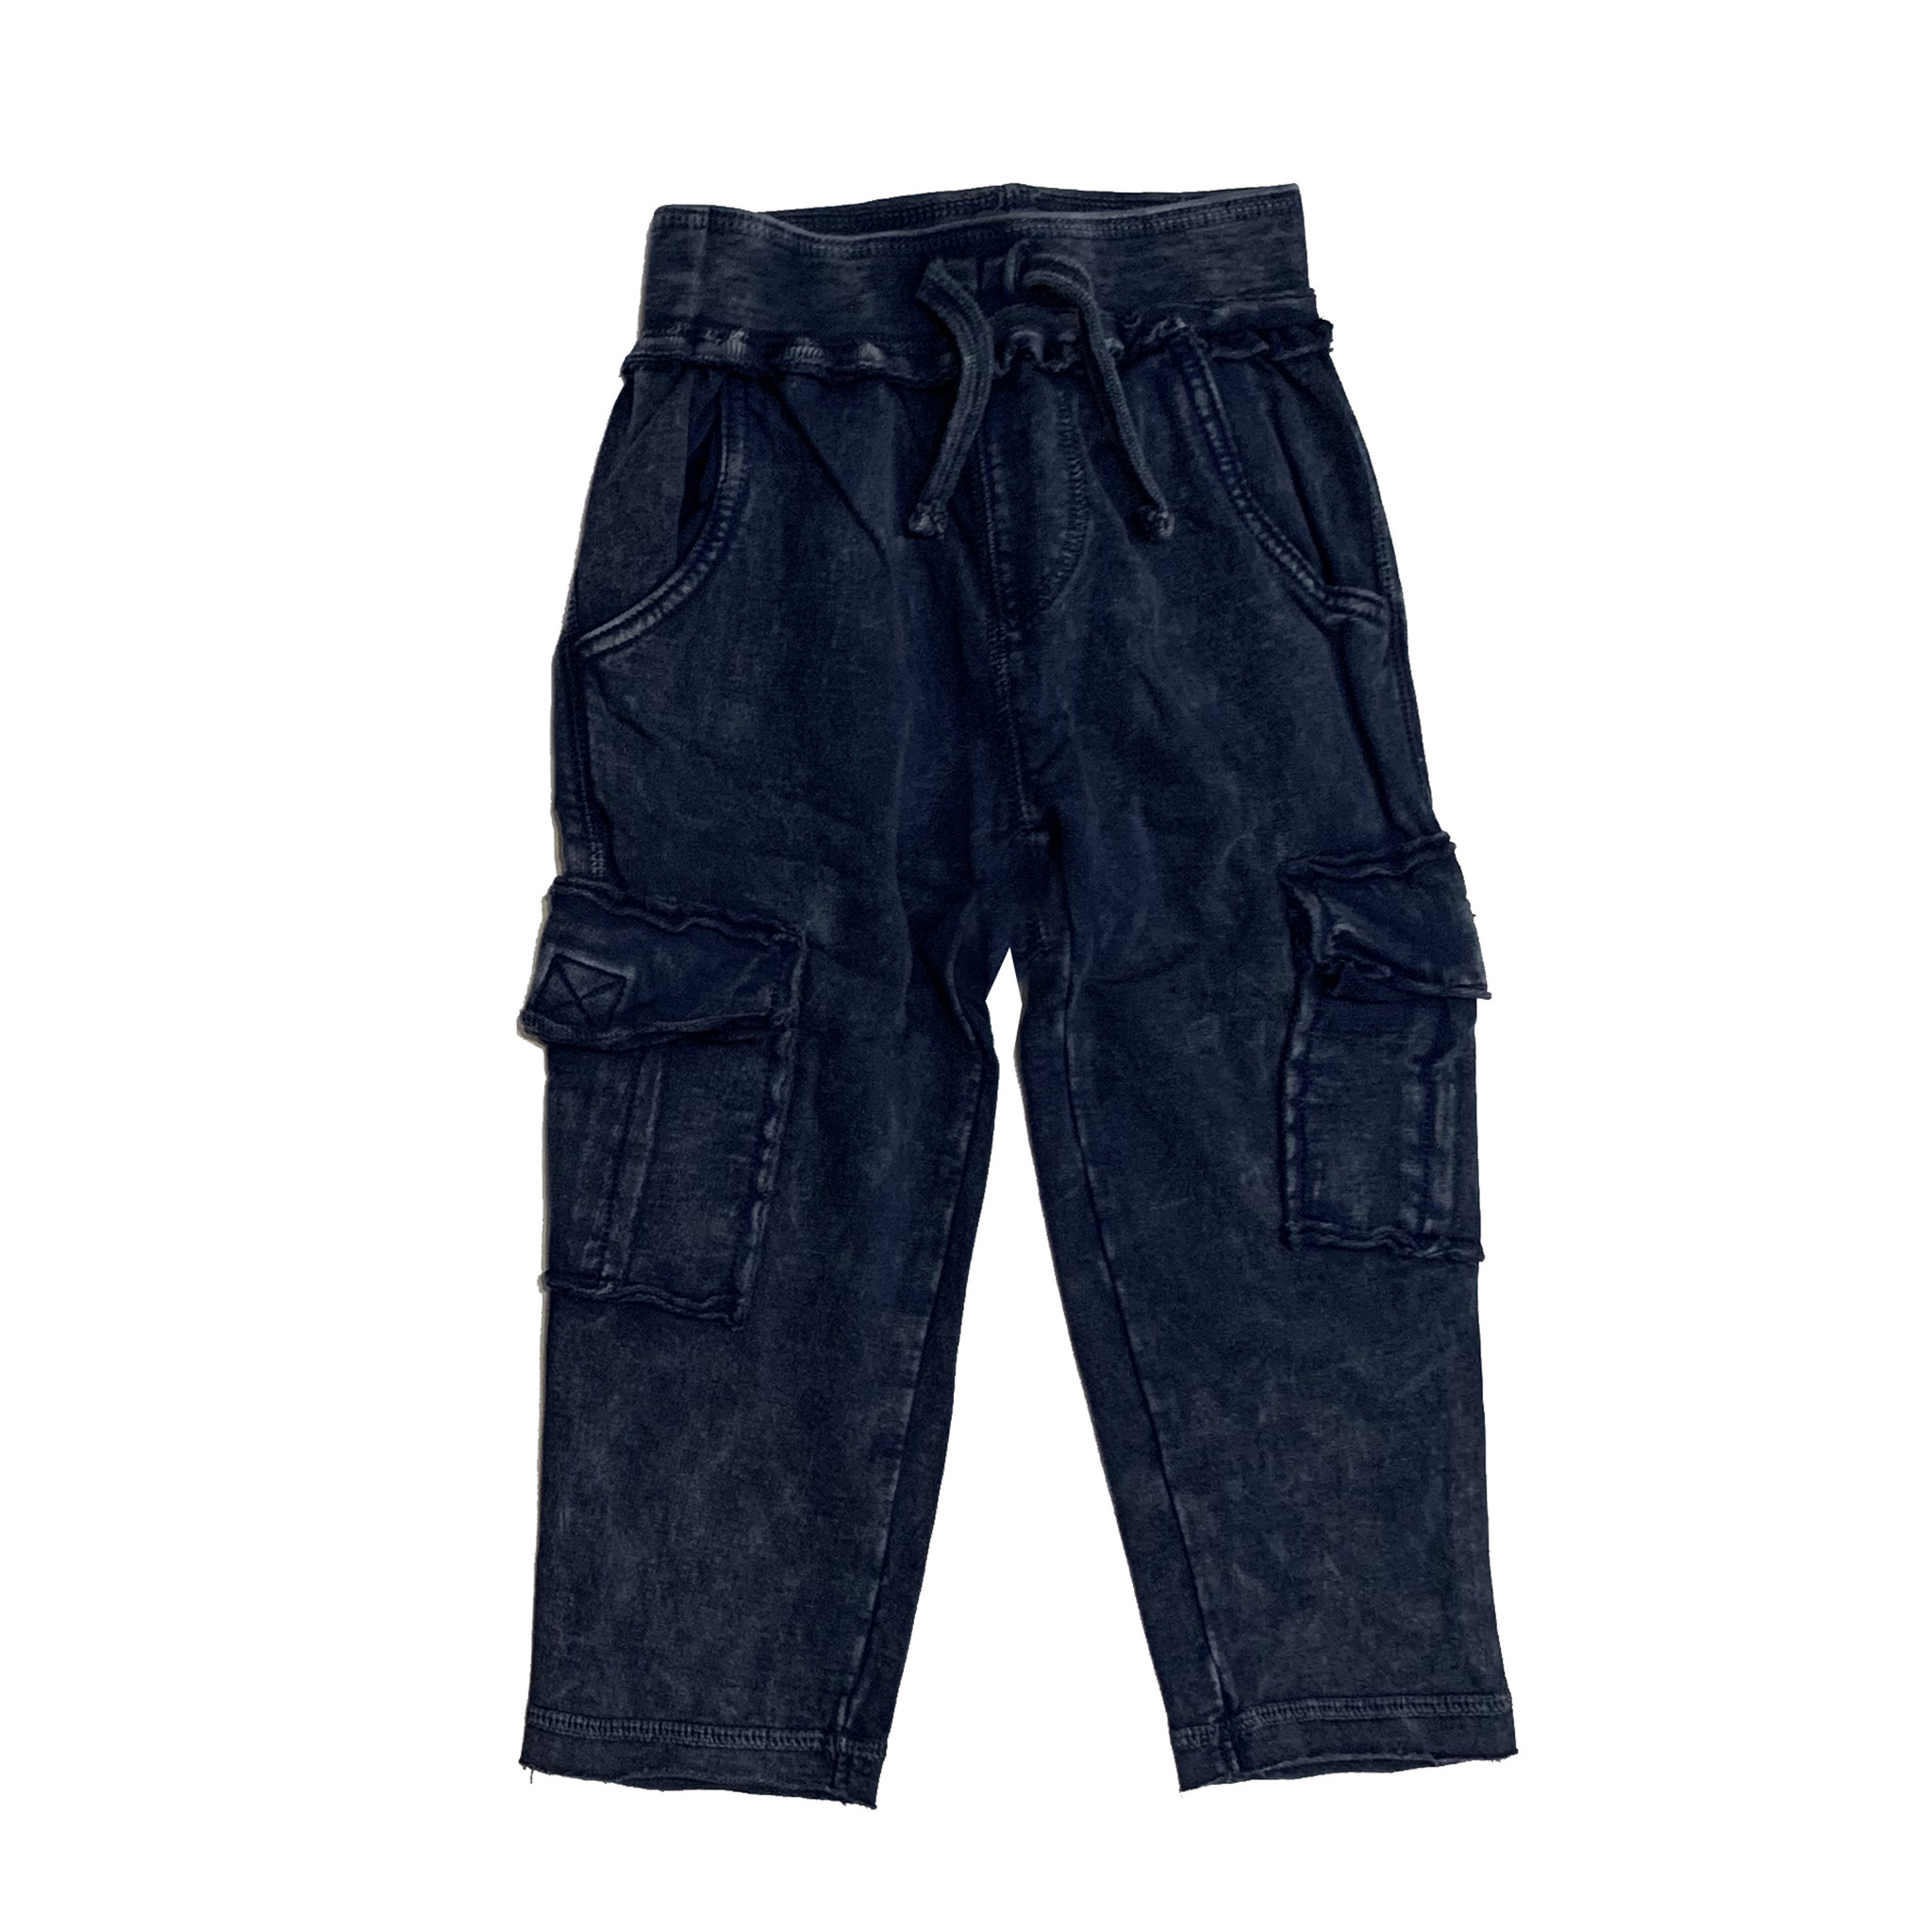 Mish Navy Enzyme Cargo Pants